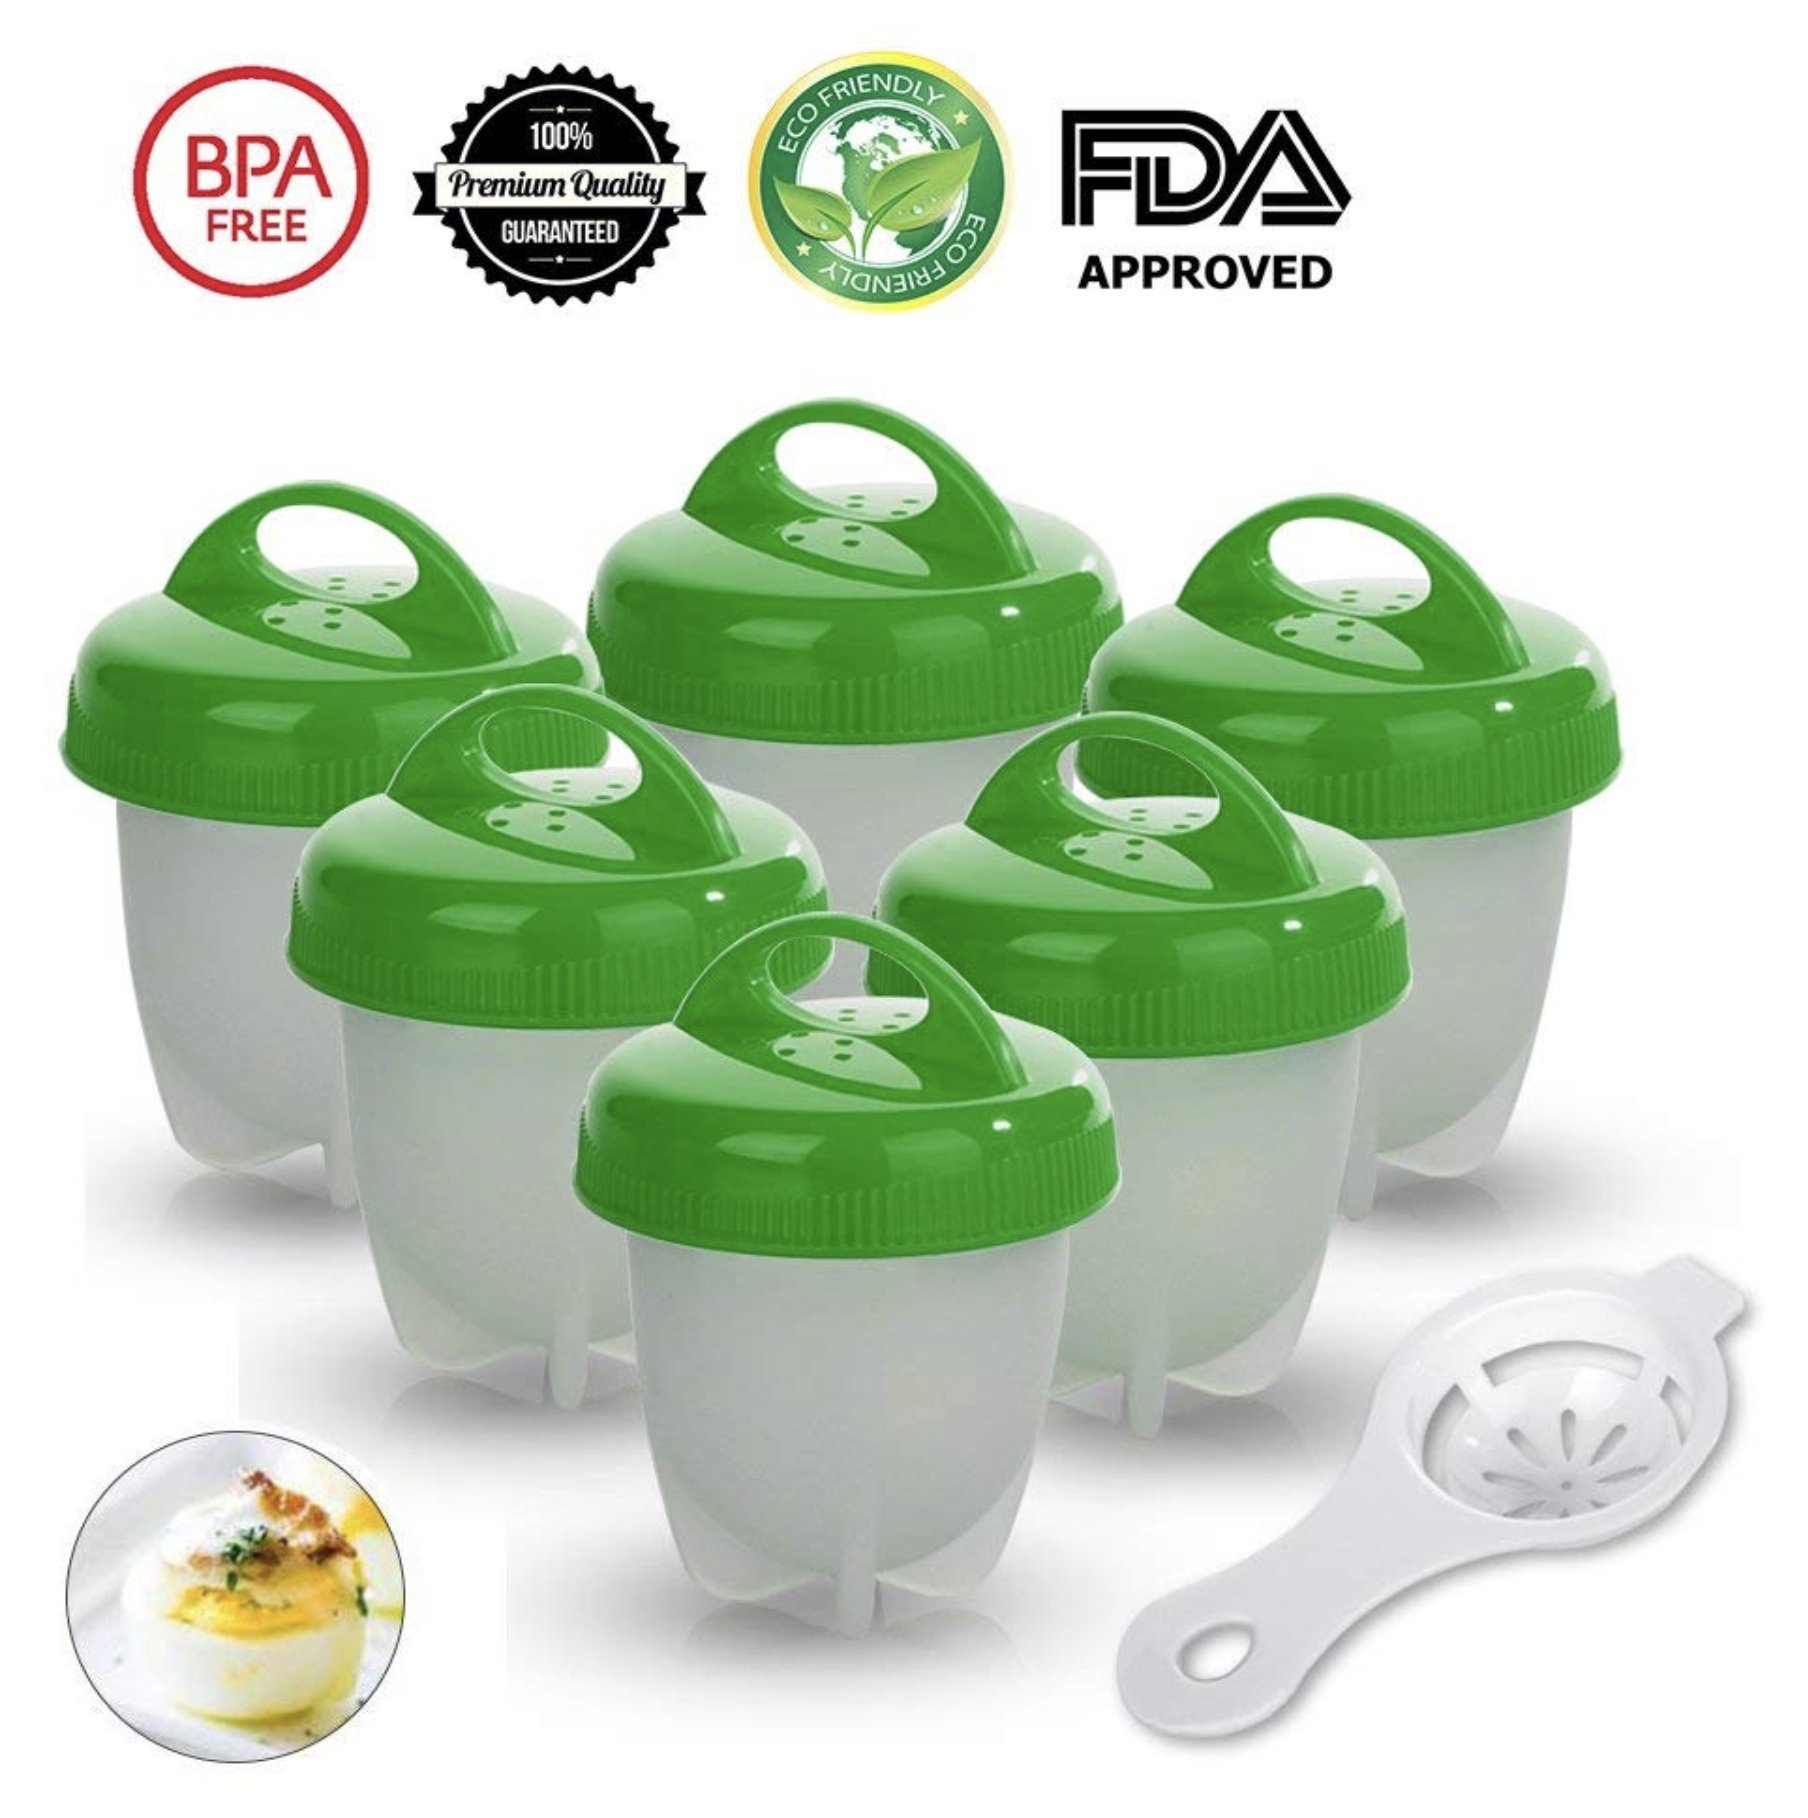 Silicone Egg Cooker, As Seen on TV, Hard and Soft without Shell Egg Boil, BPA free, 6 pack (Green)